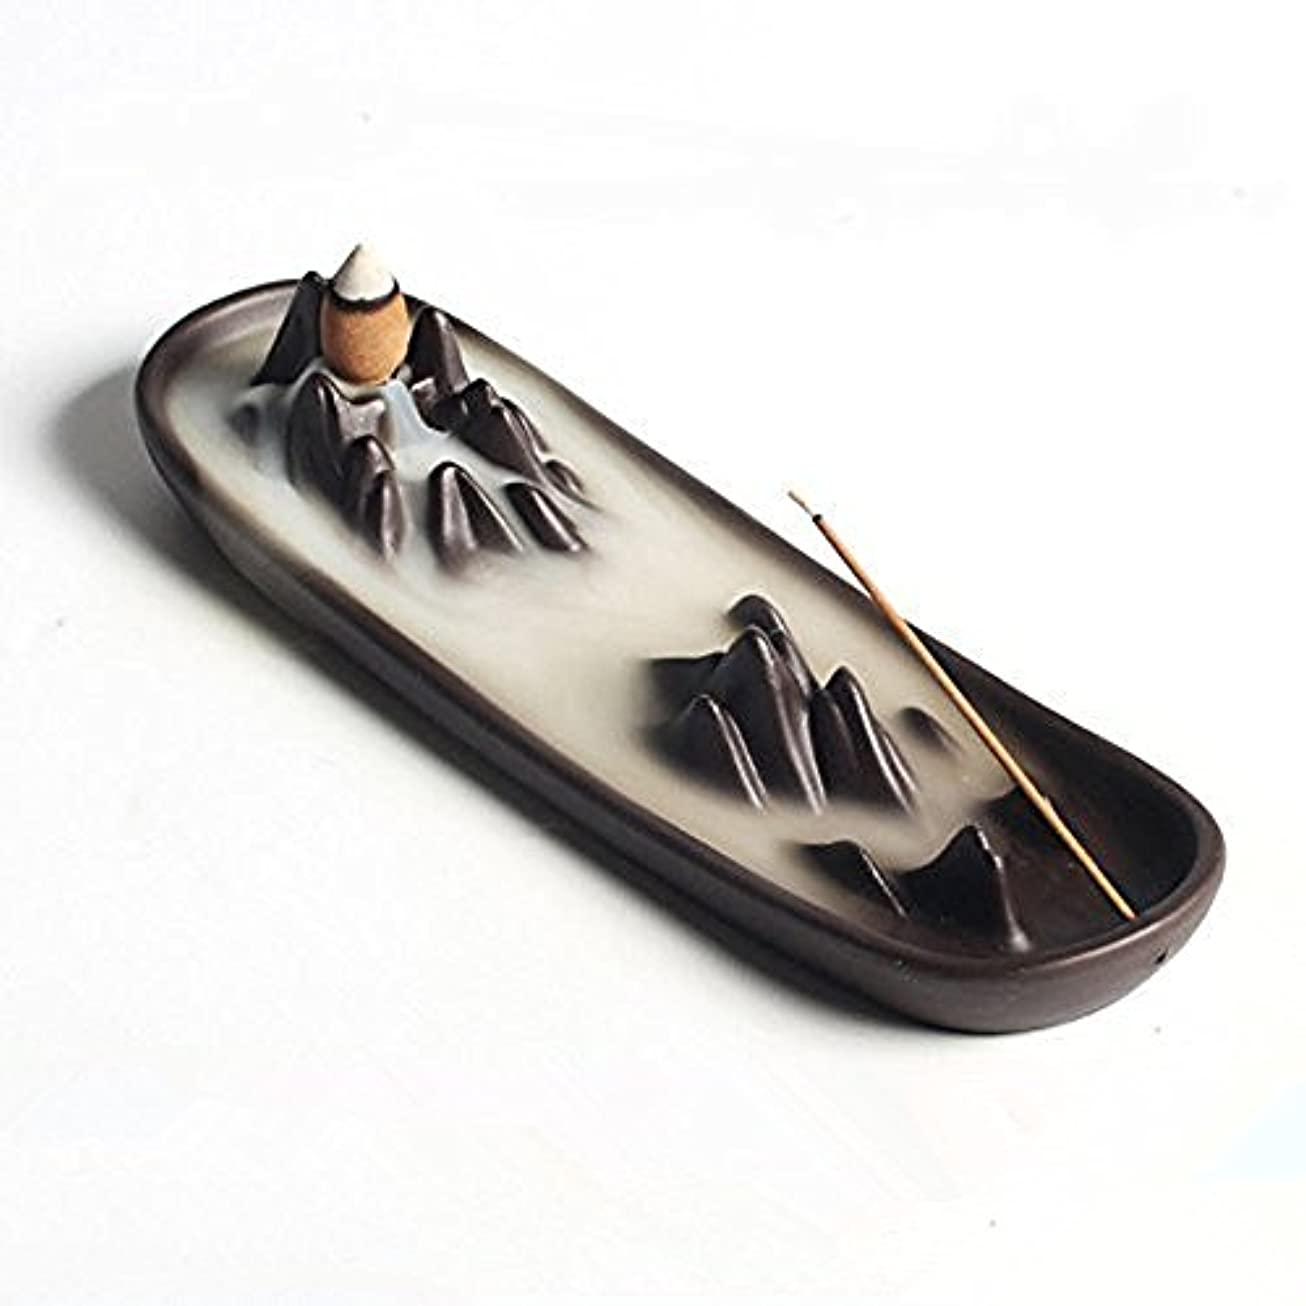 似ている見分ける名前を作るCeramic mountain peak Boat Style Multifunction Incense Burner Stick Backflow Incense Holder Clay Incense Ash Catcher...